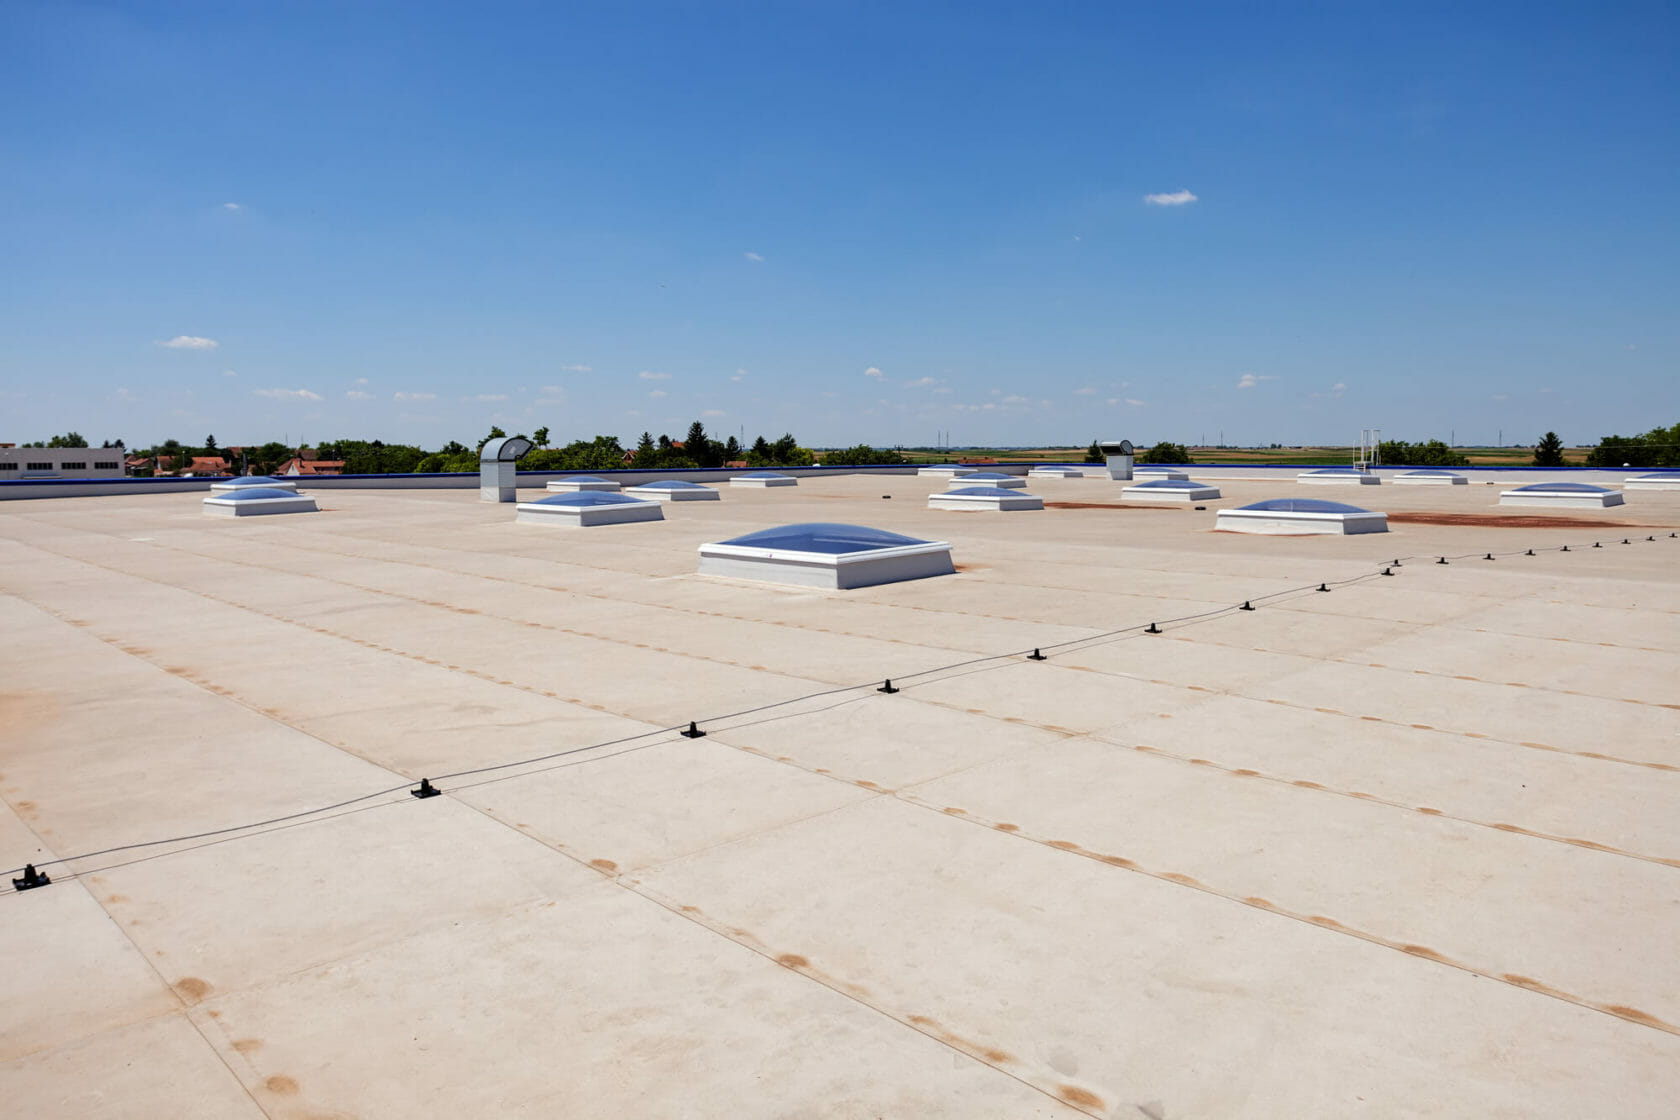 skylights scattered across commercial roof